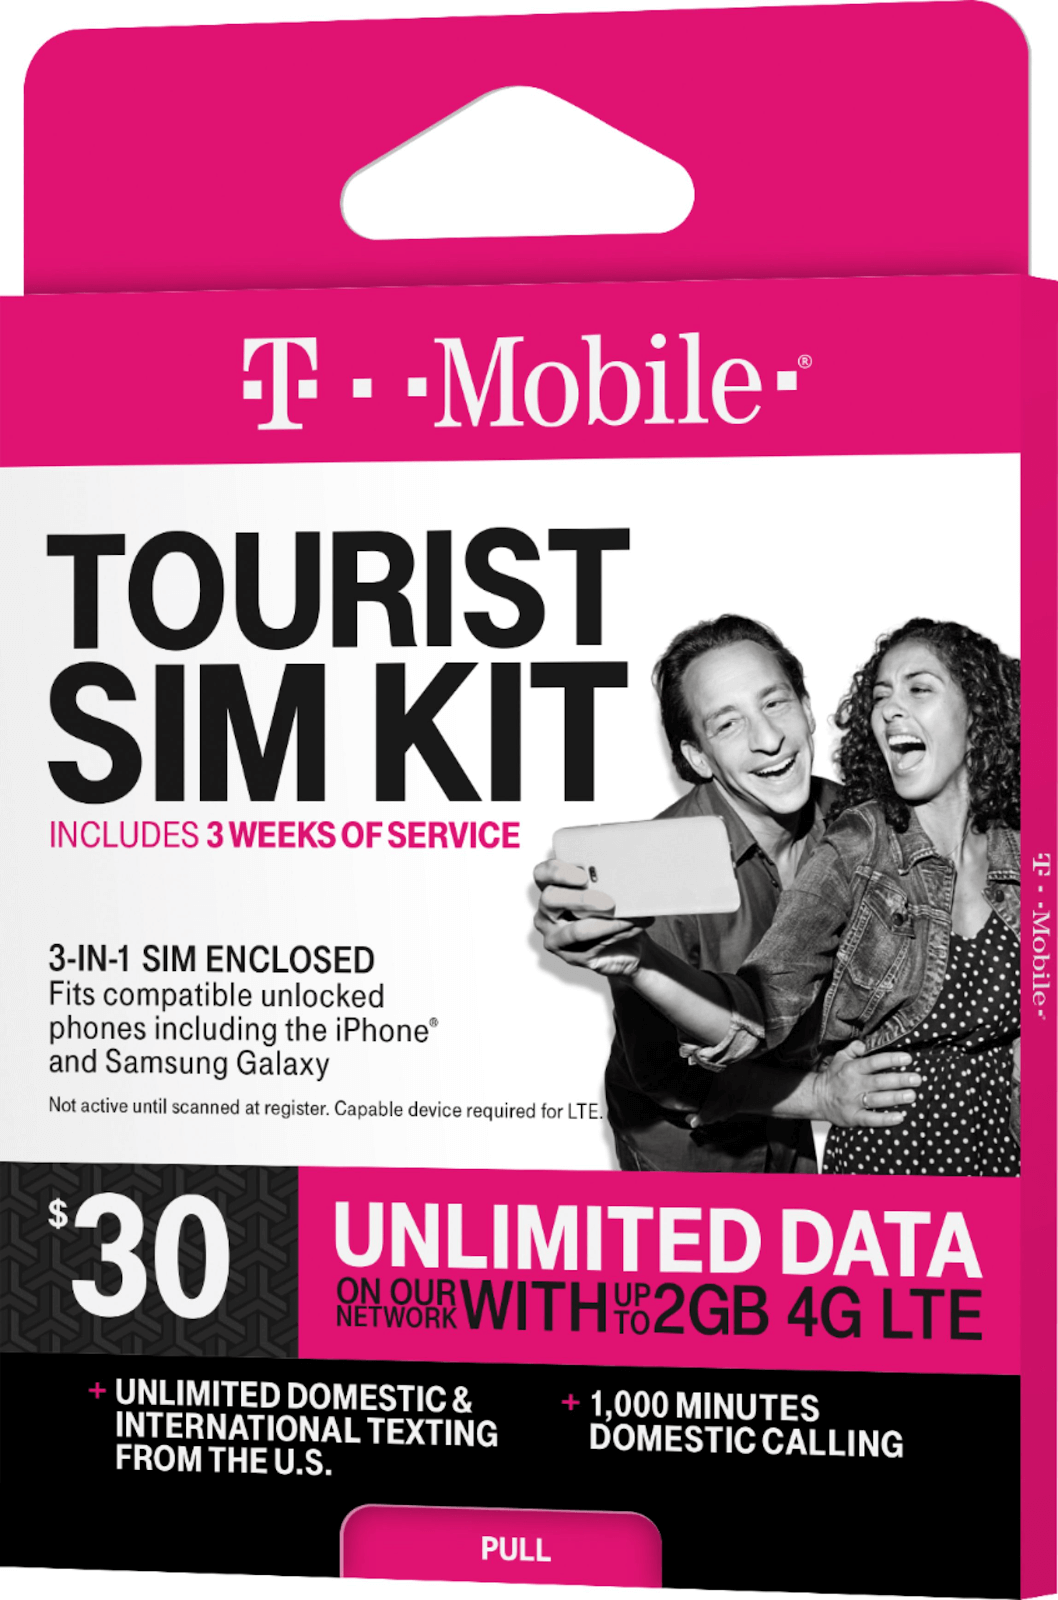 t-mobile tourist sim kit